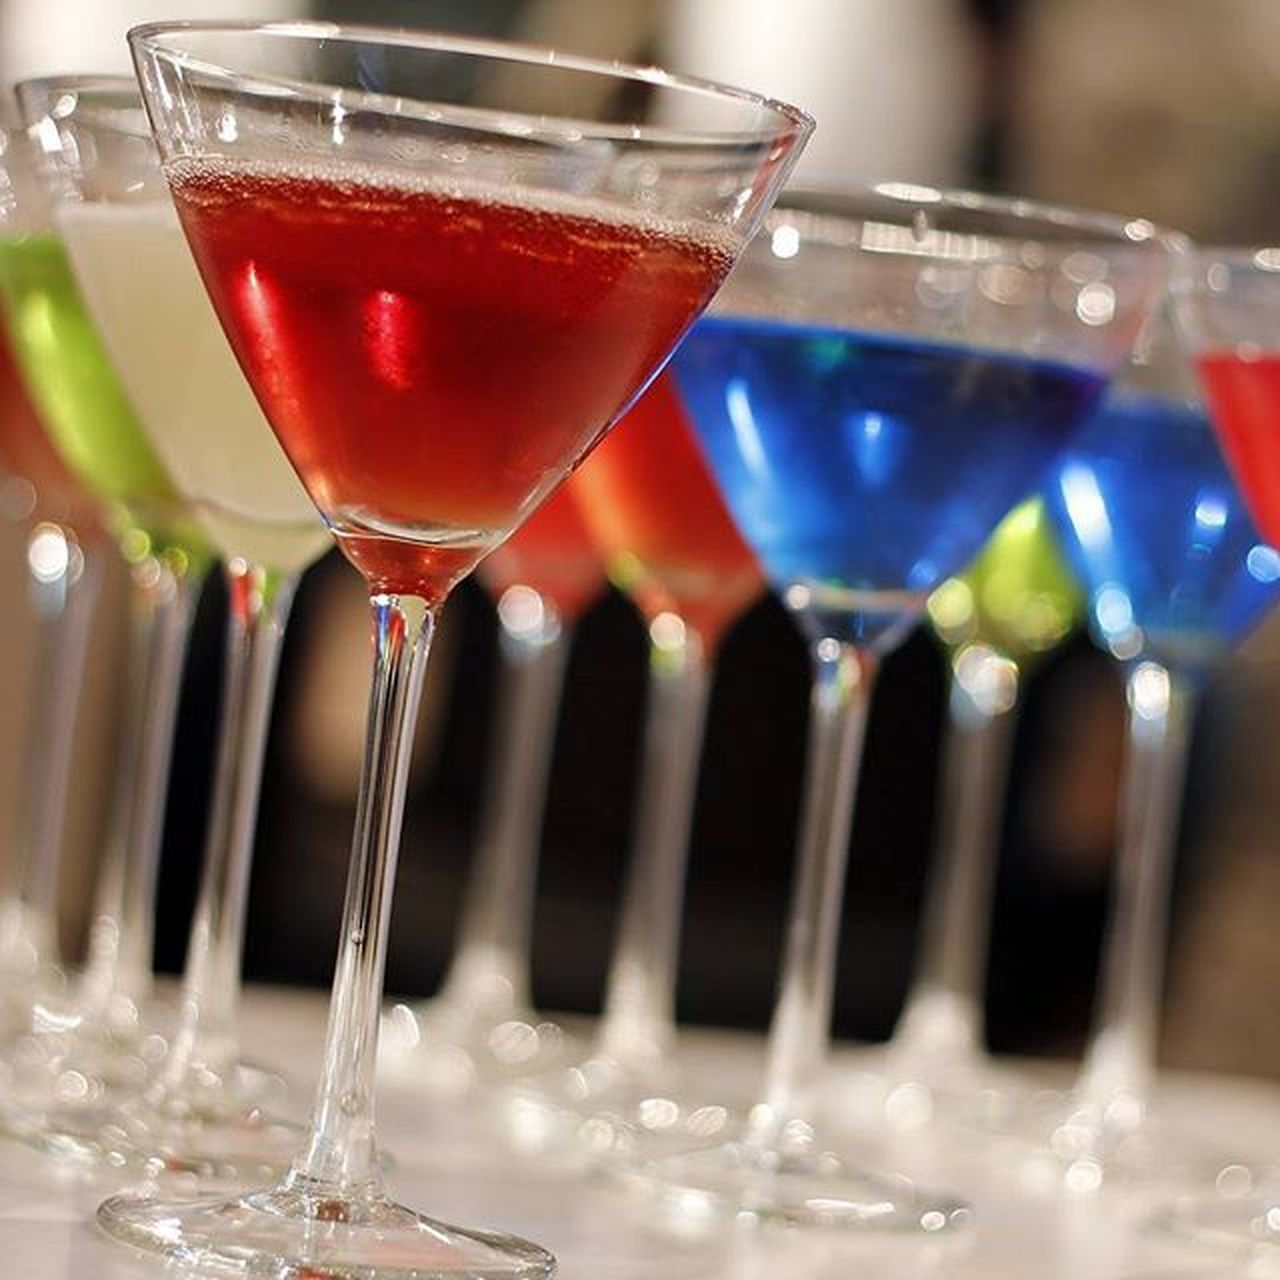 cocktail, alcohol, drink, martini glass, martini, drinking glass, food and drink, refreshment, close-up, no people, champagne, red, bar - drink establishment, indoors, tropical drink, freshness, mojito, liqueur, day